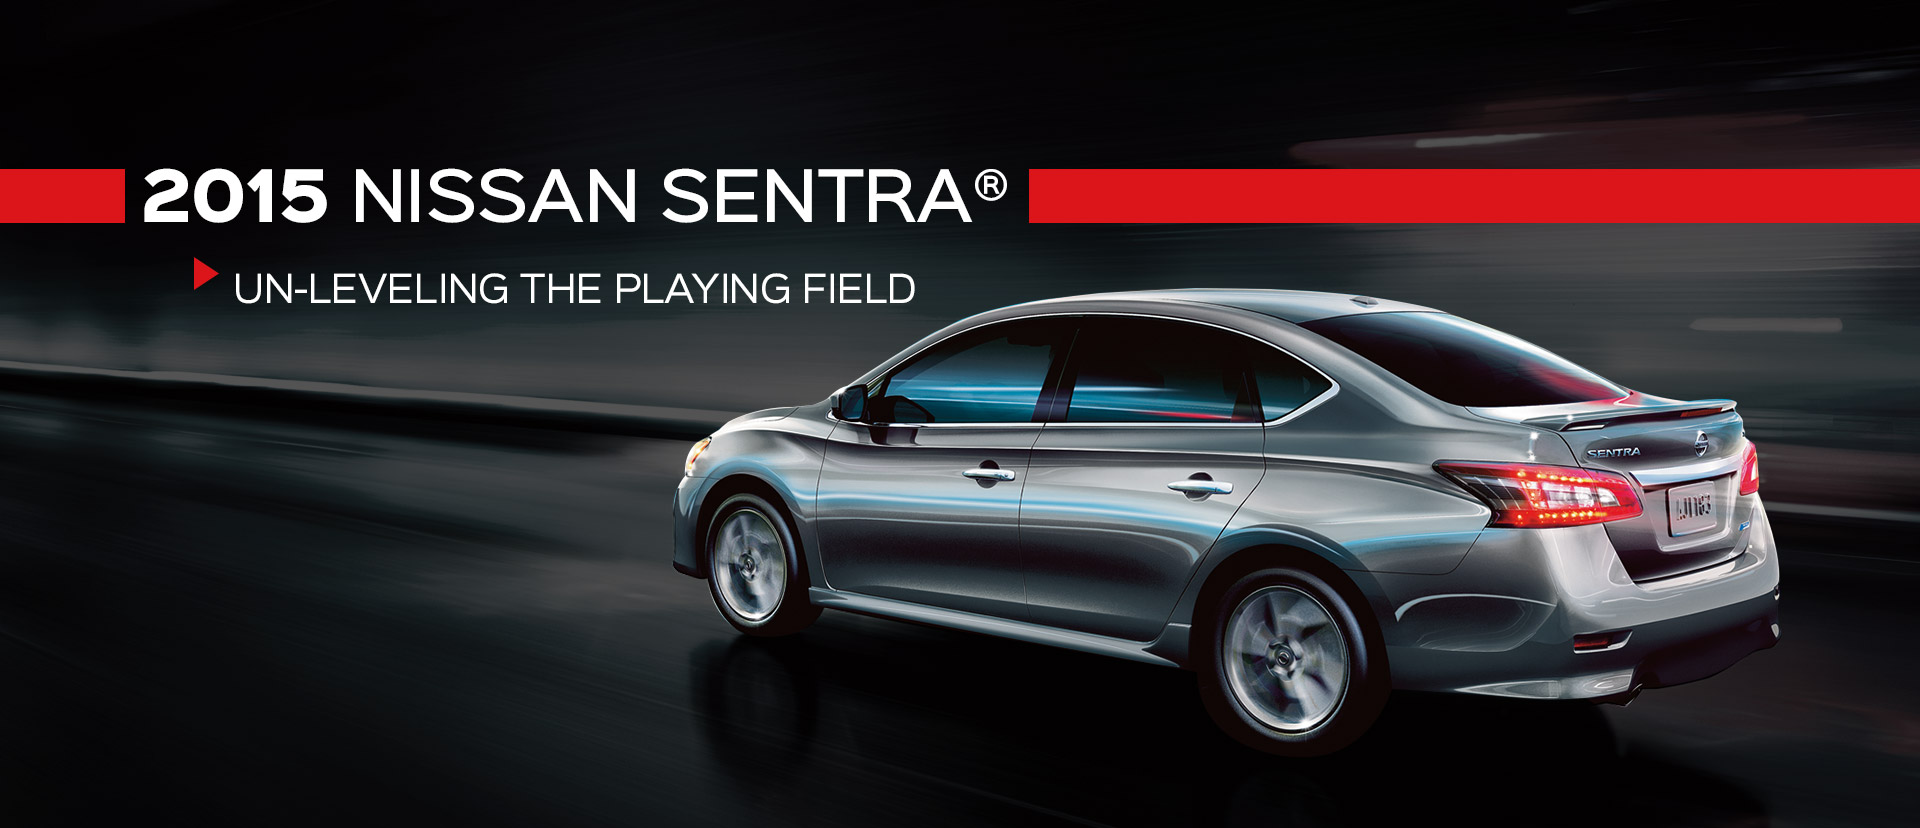 Nissan Sentra Canned